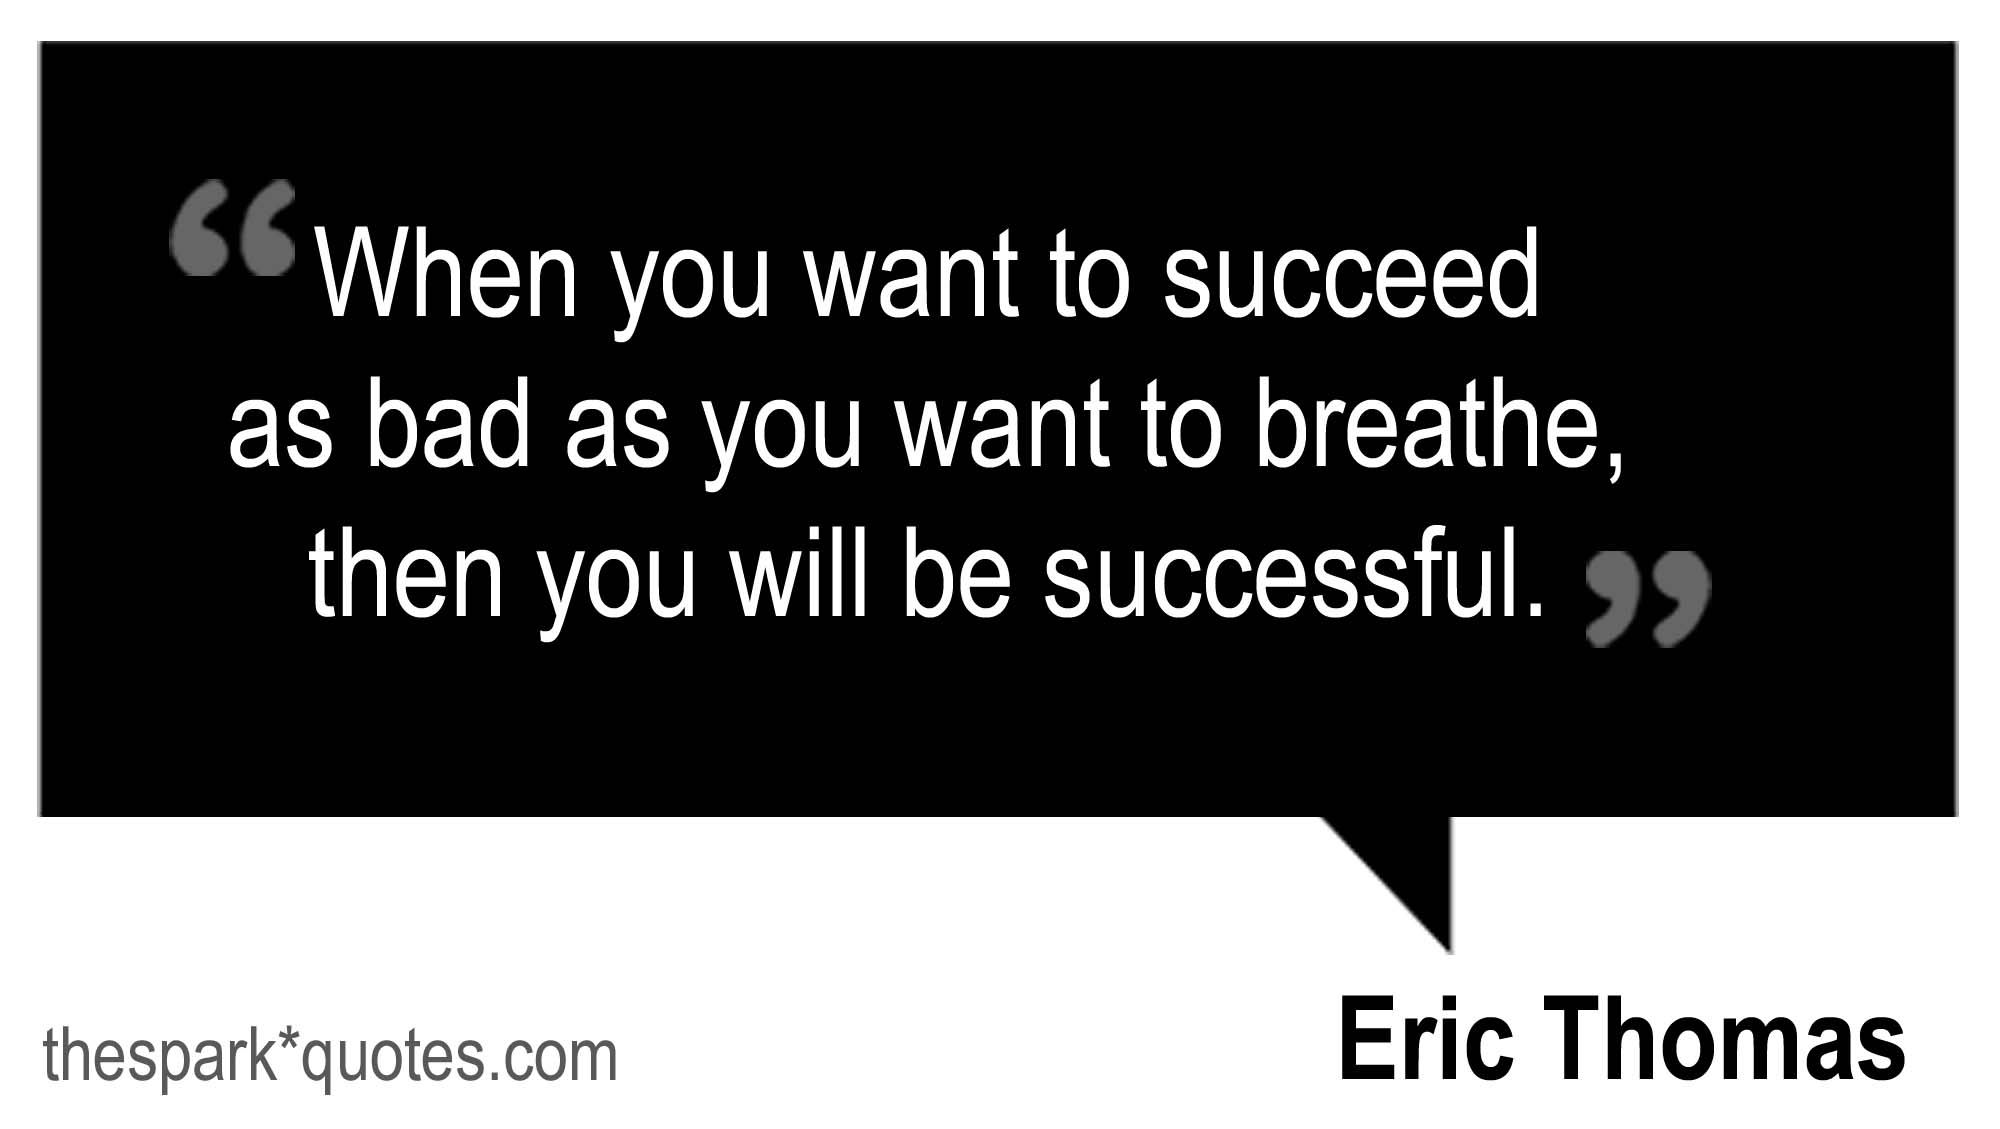 eric thomas quotes to live by quotesgram. Black Bedroom Furniture Sets. Home Design Ideas